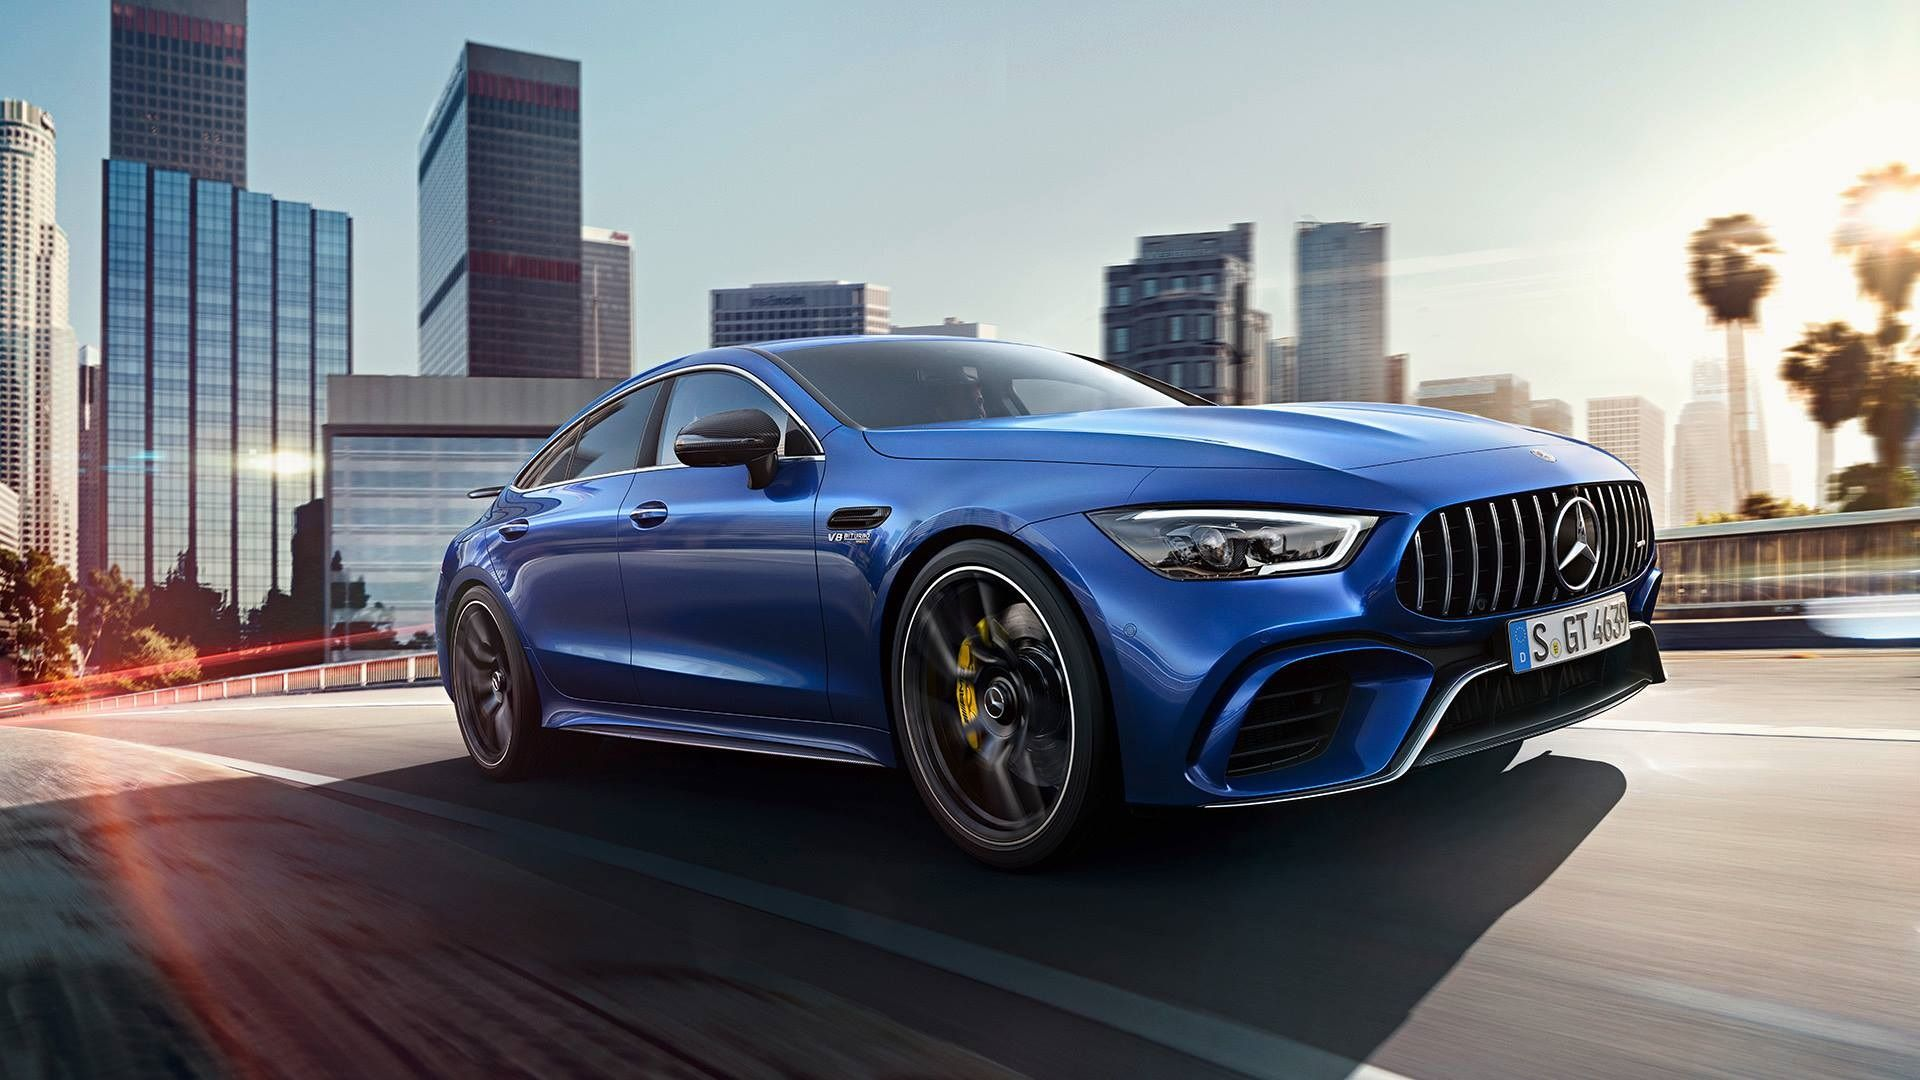 Mercedes Amg Gt 63 S 4matic 4 Door Coupe Mercedes Amg Amg Mercedes